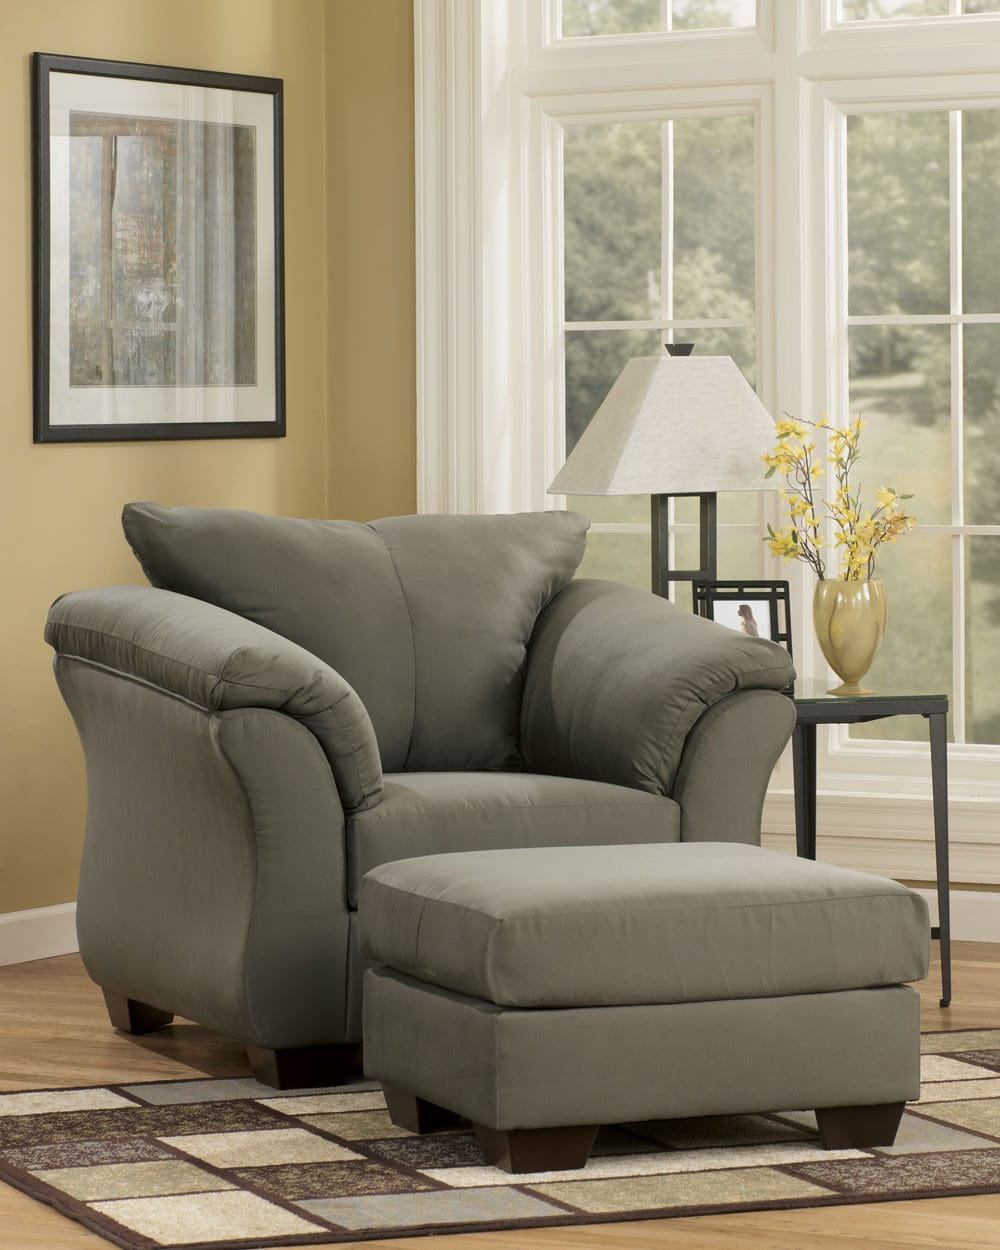 Darcy Sage Chair Signature Design By Ashley Furniture